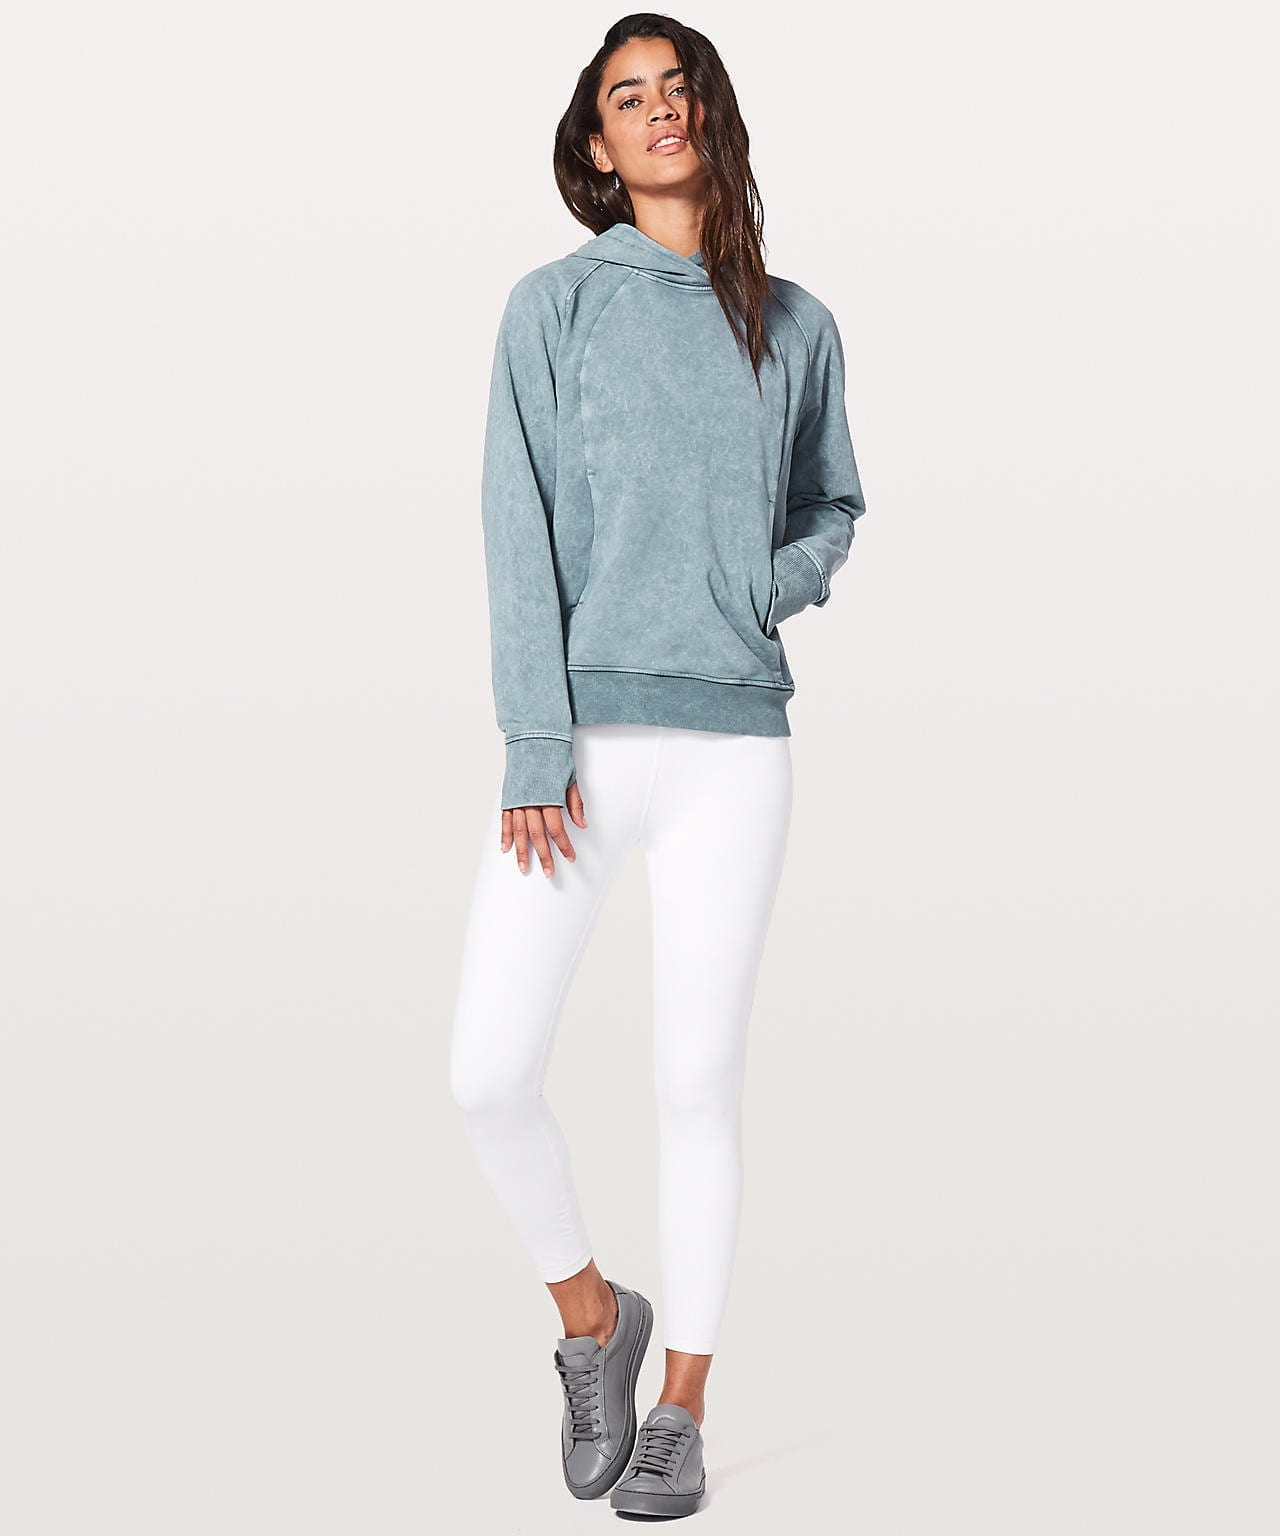 Scuba Pullover Washed Blue Charcoal